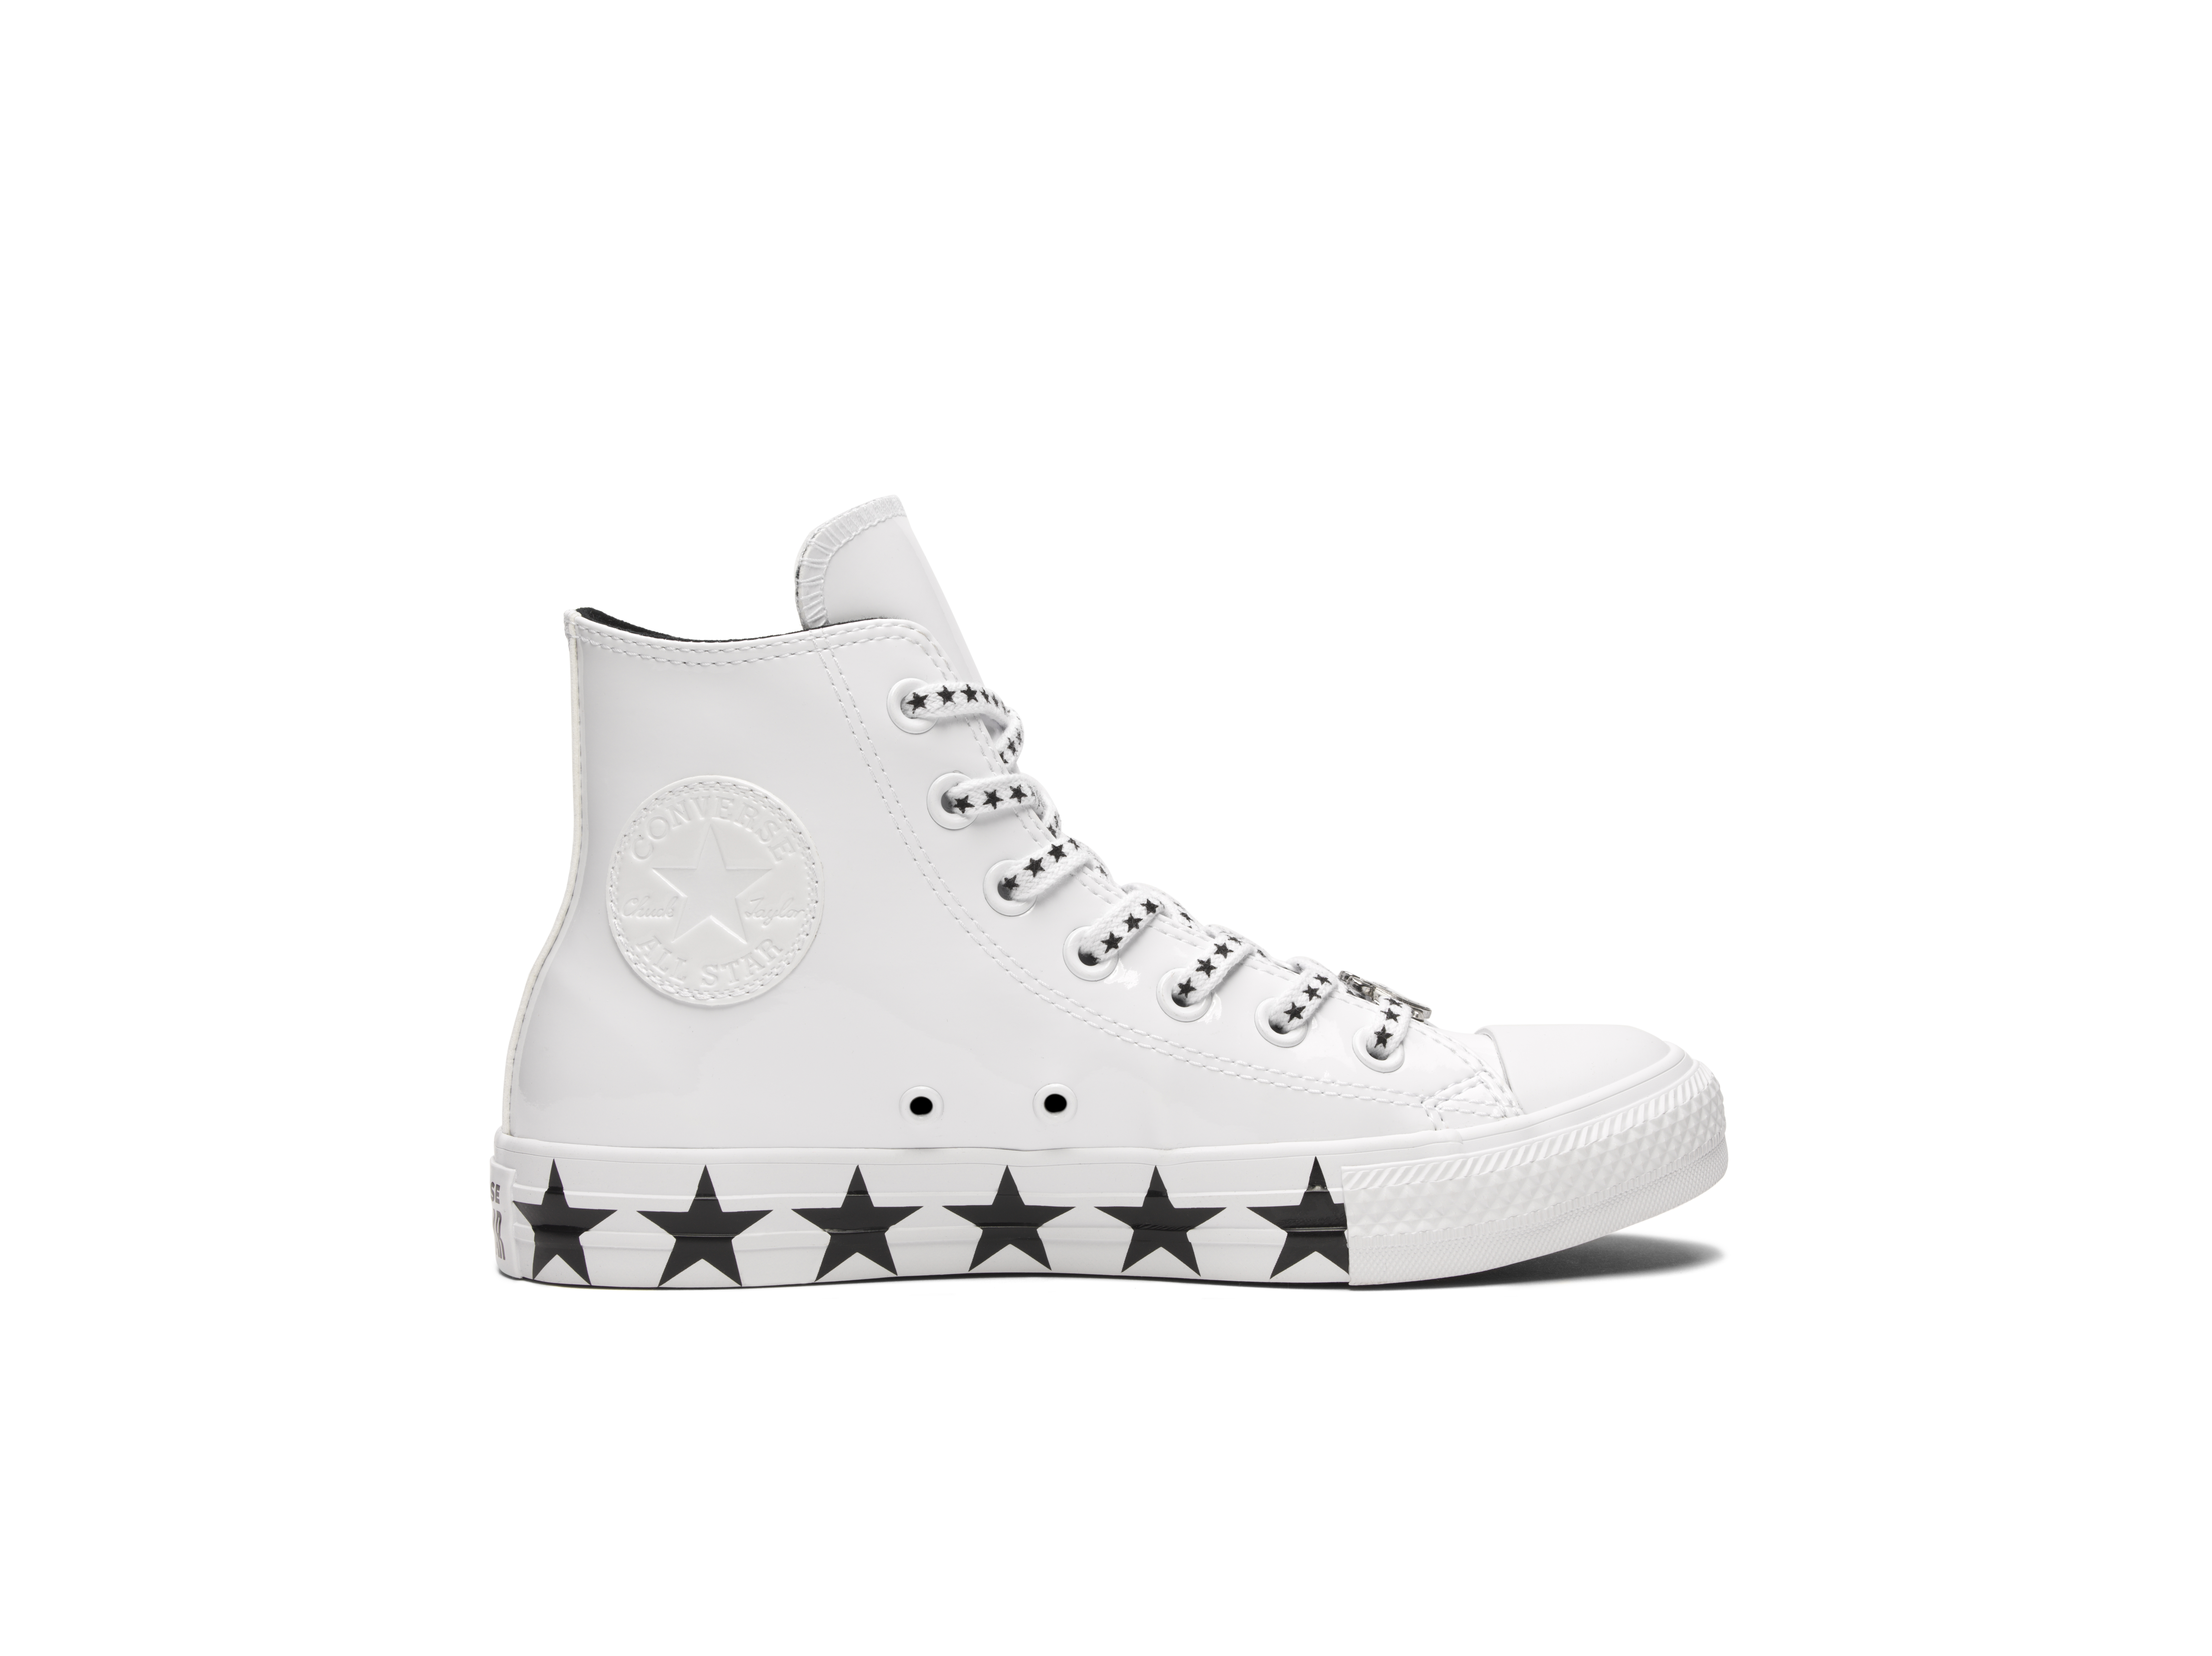 d1e436cee38 Converse x Miley Cyrus Chuck Taylor All Star Faux Patent High Top